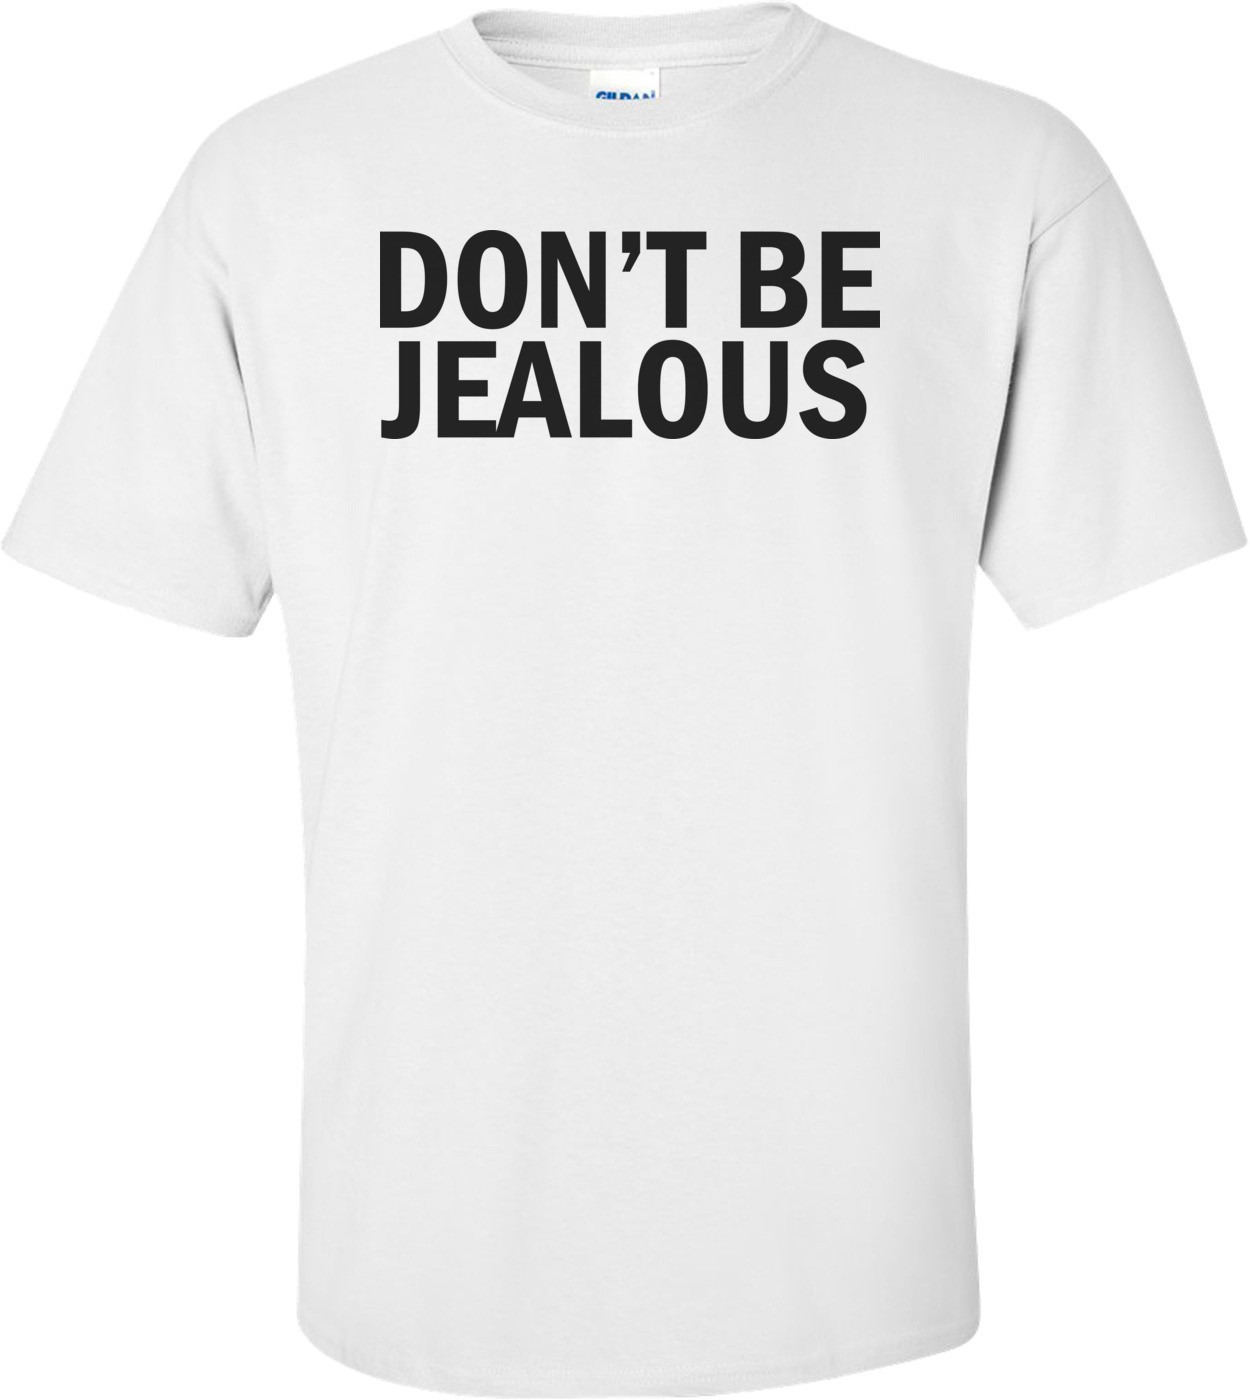 Don't Be Jealous Funny Shirt